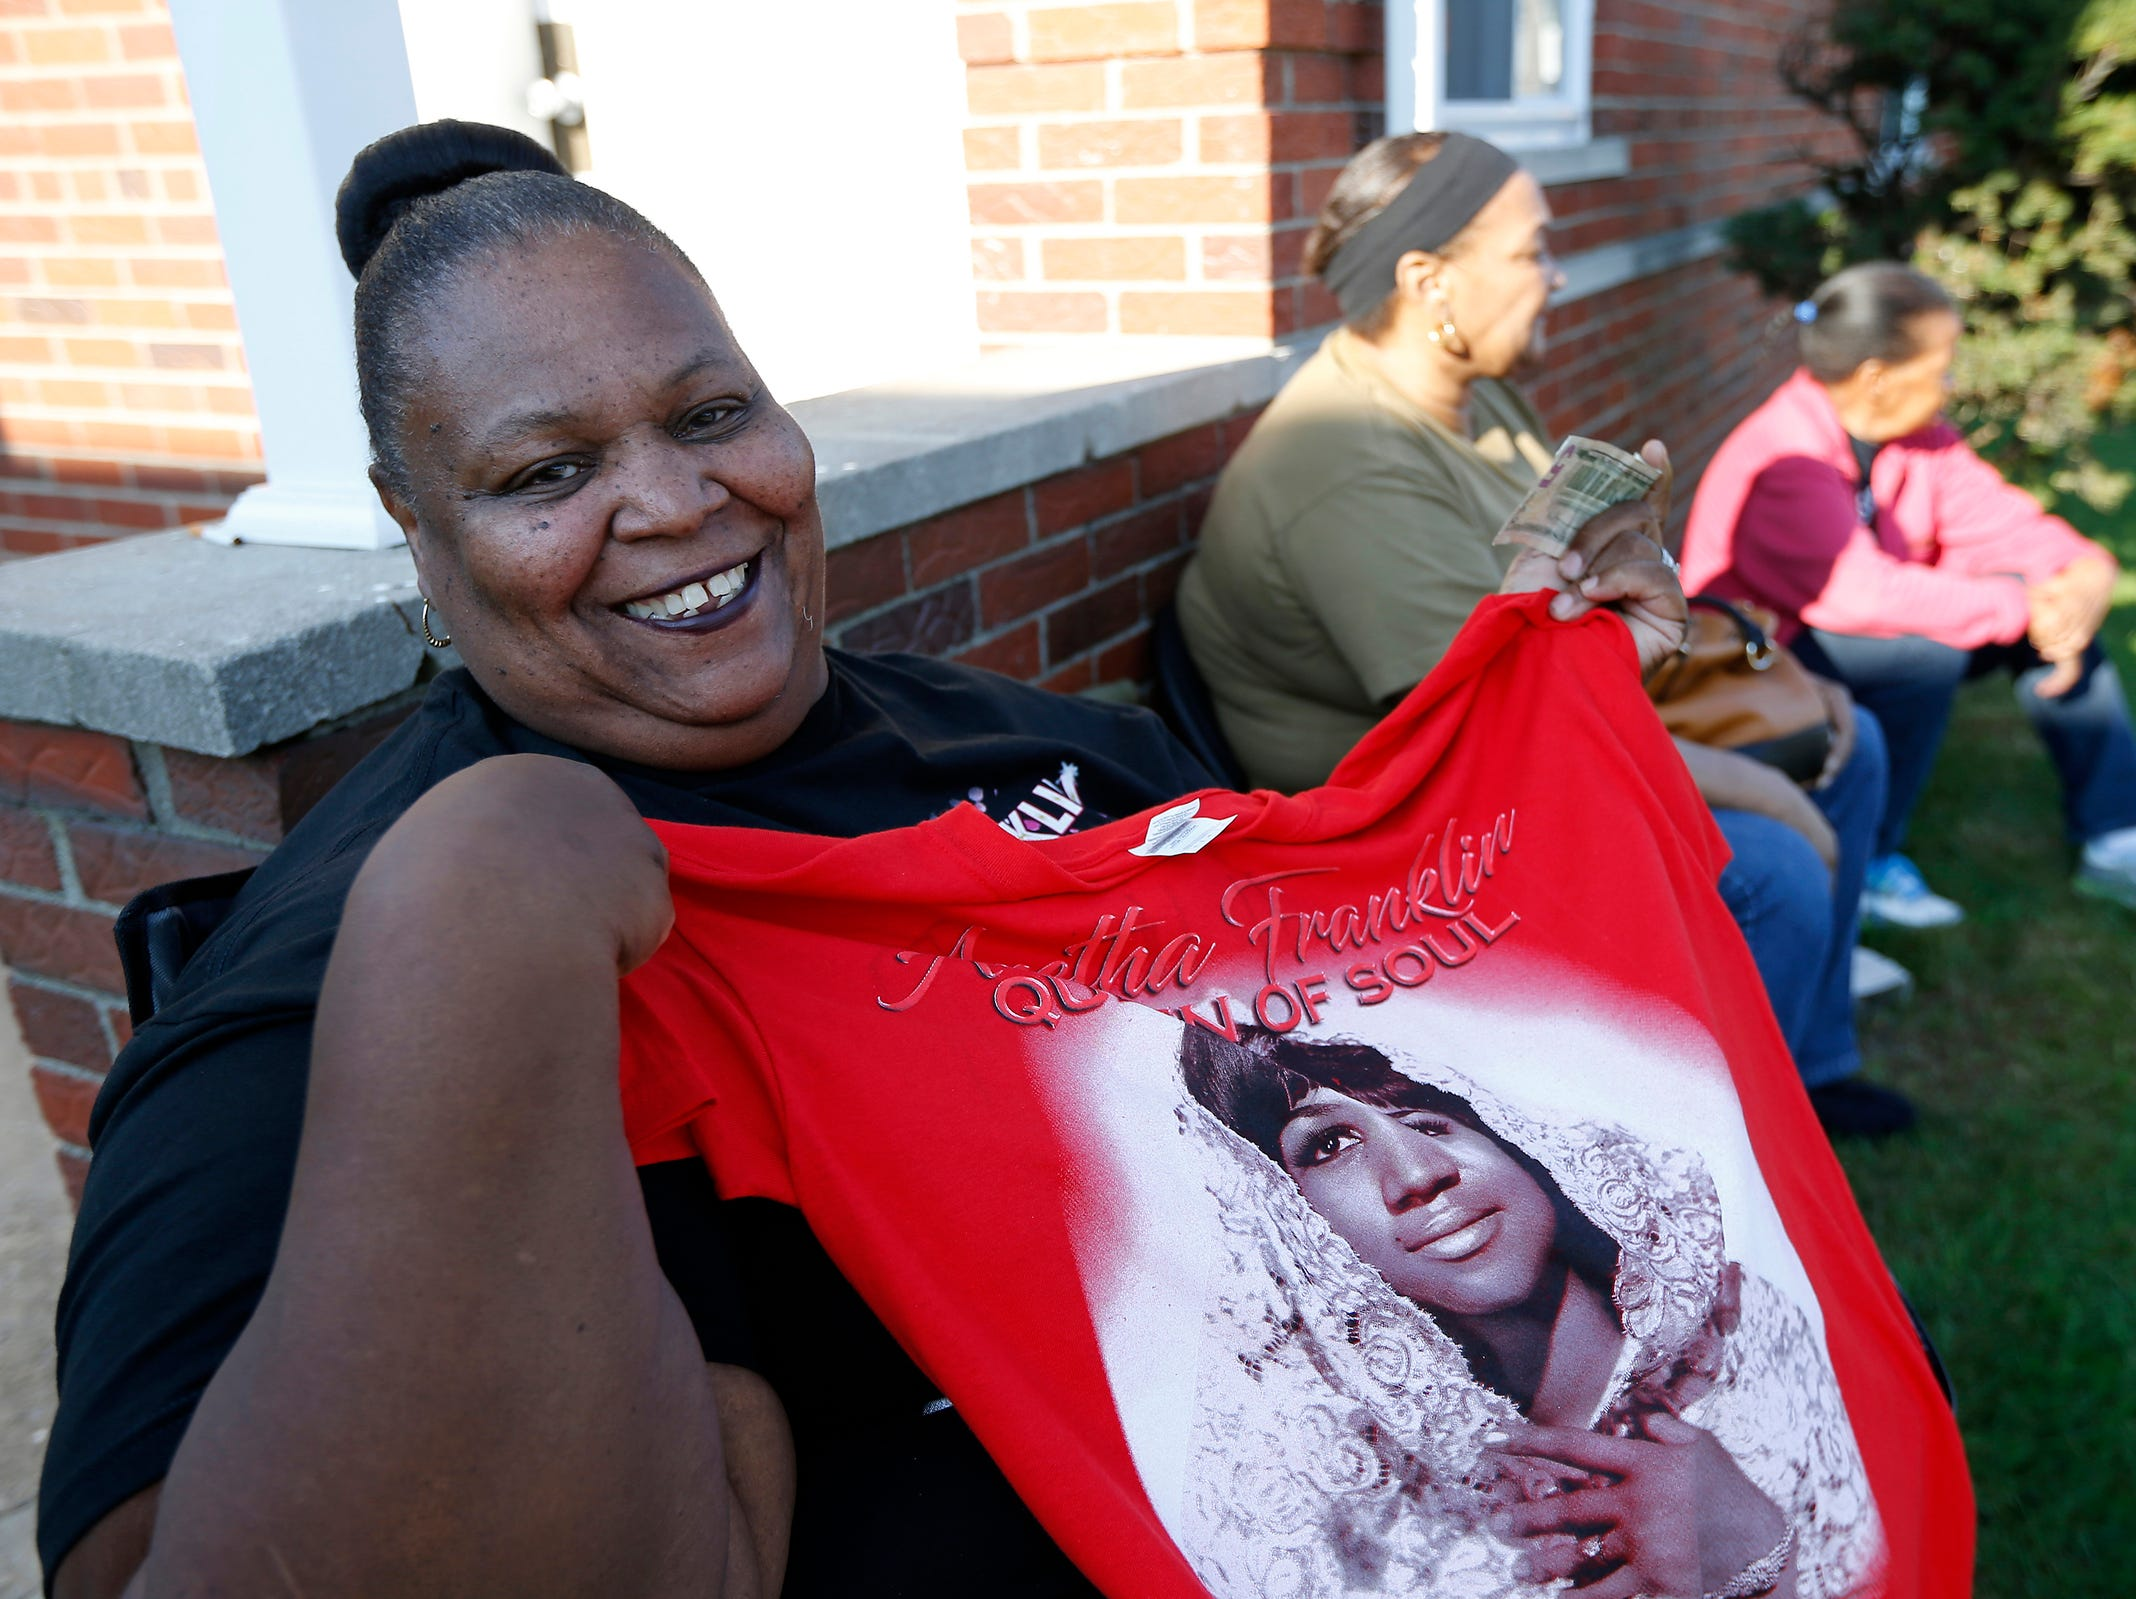 Mary Williams shows off a commemorative t-shirt she purchased during the funeral of Aretha Franklin outside the Greater Grace Temple in Detroit on Friday, Aug. 31, 2018.